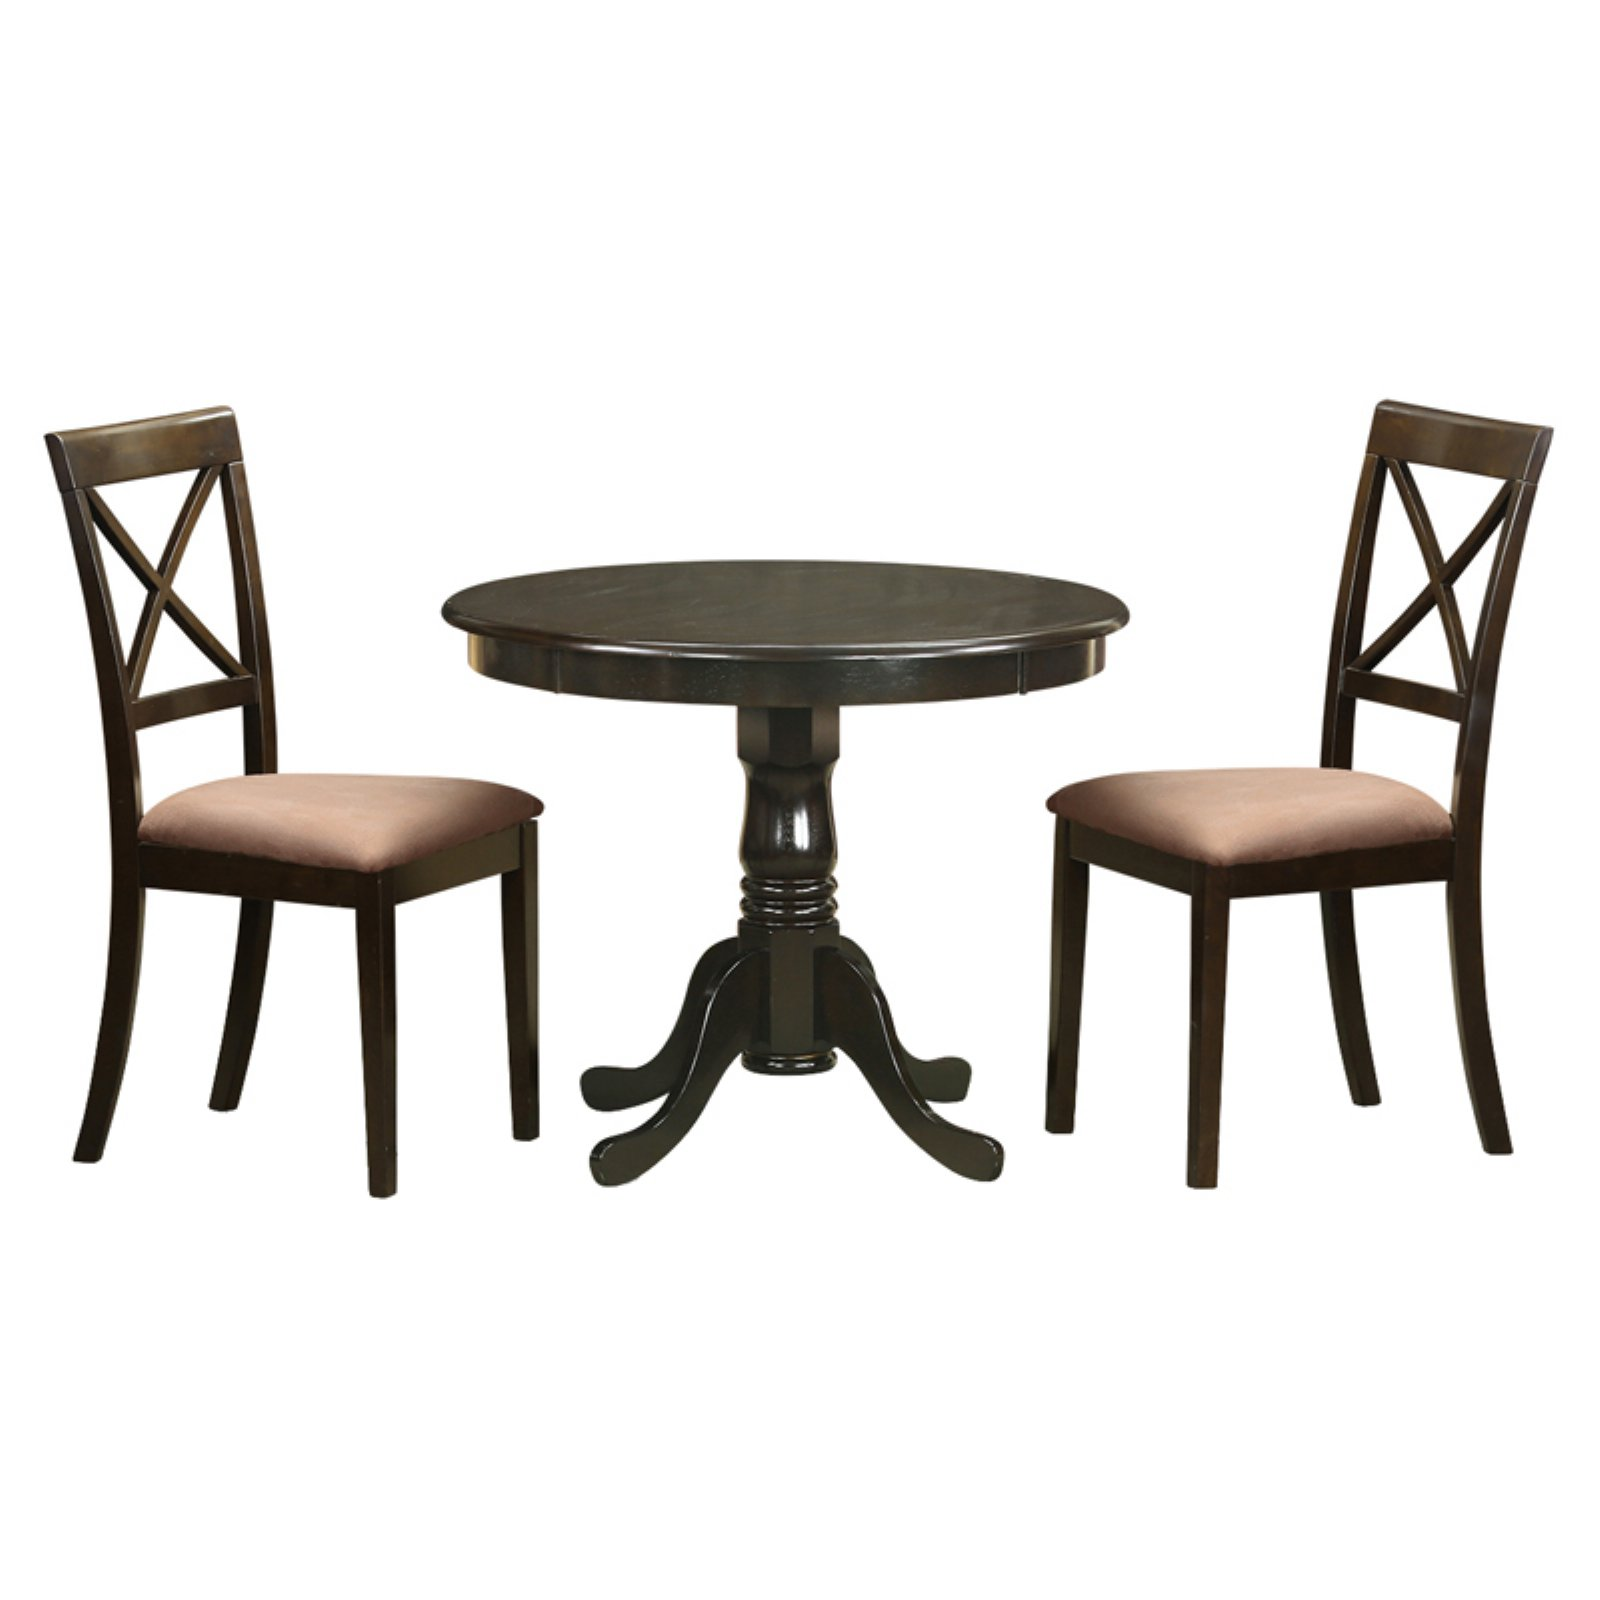 East West Furniture Antique 3 Piece Pedestal Round Dining Table Set with Boston Microfiber Seat Chairs